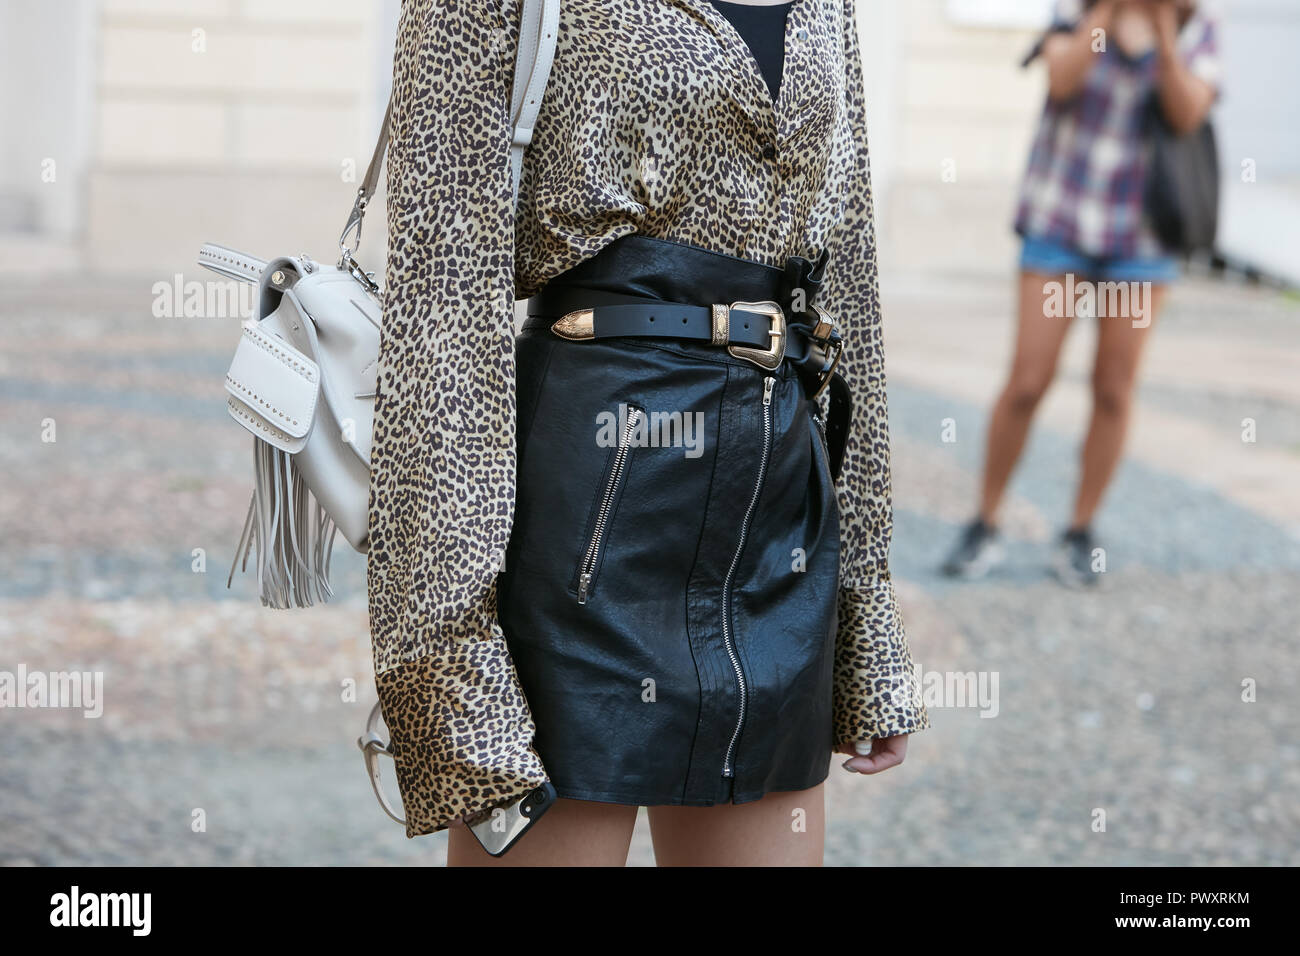 Leopard Skin Outfit Immagini   Leopard Skin Outfit Fotos Stock - Alamy 6942725967d